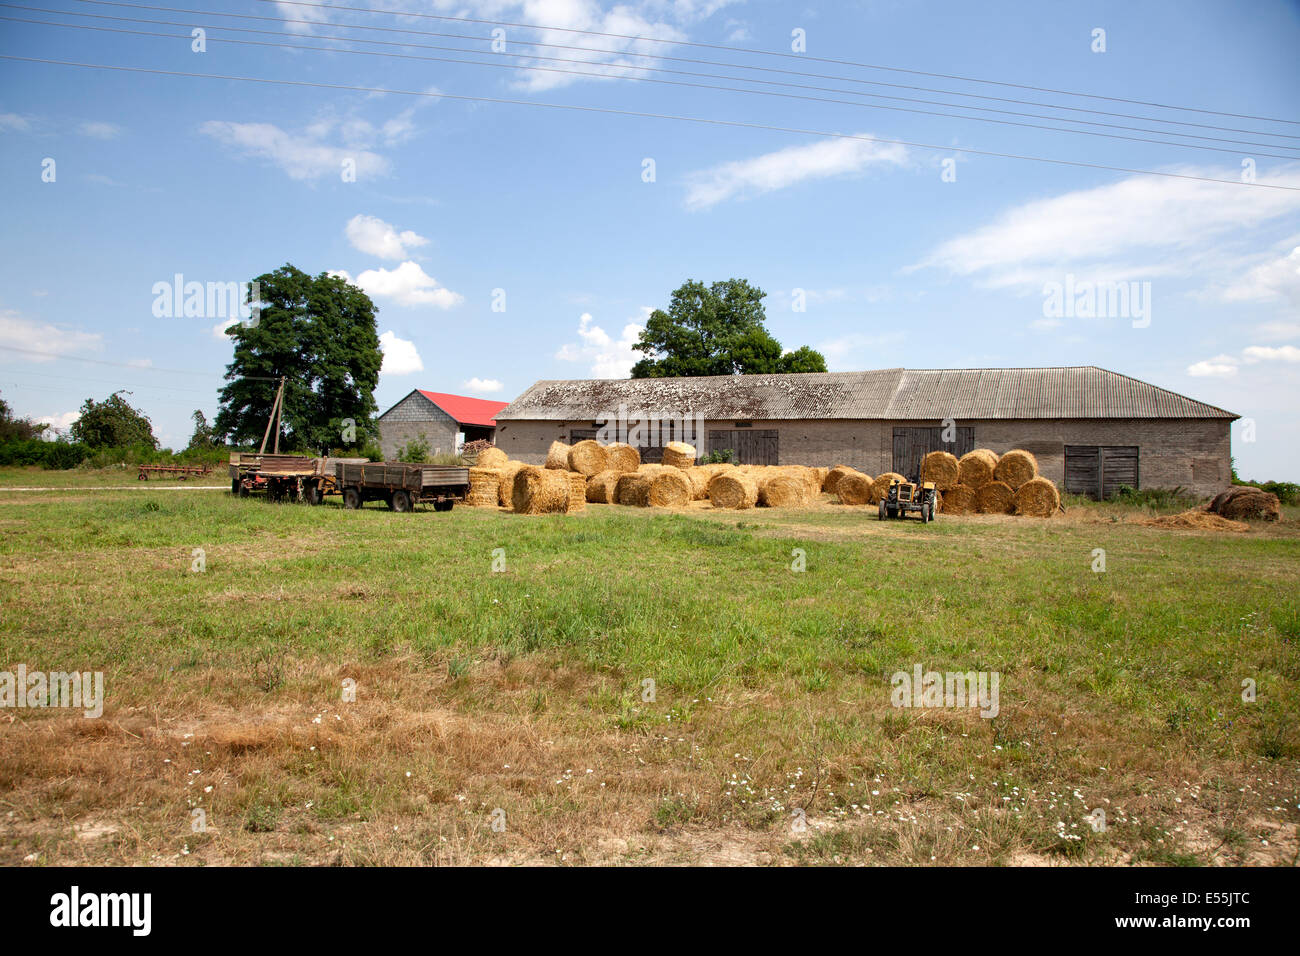 Round bails of harvested hay in front of farmer's storage buildings. Zawady Poland - Stock Image